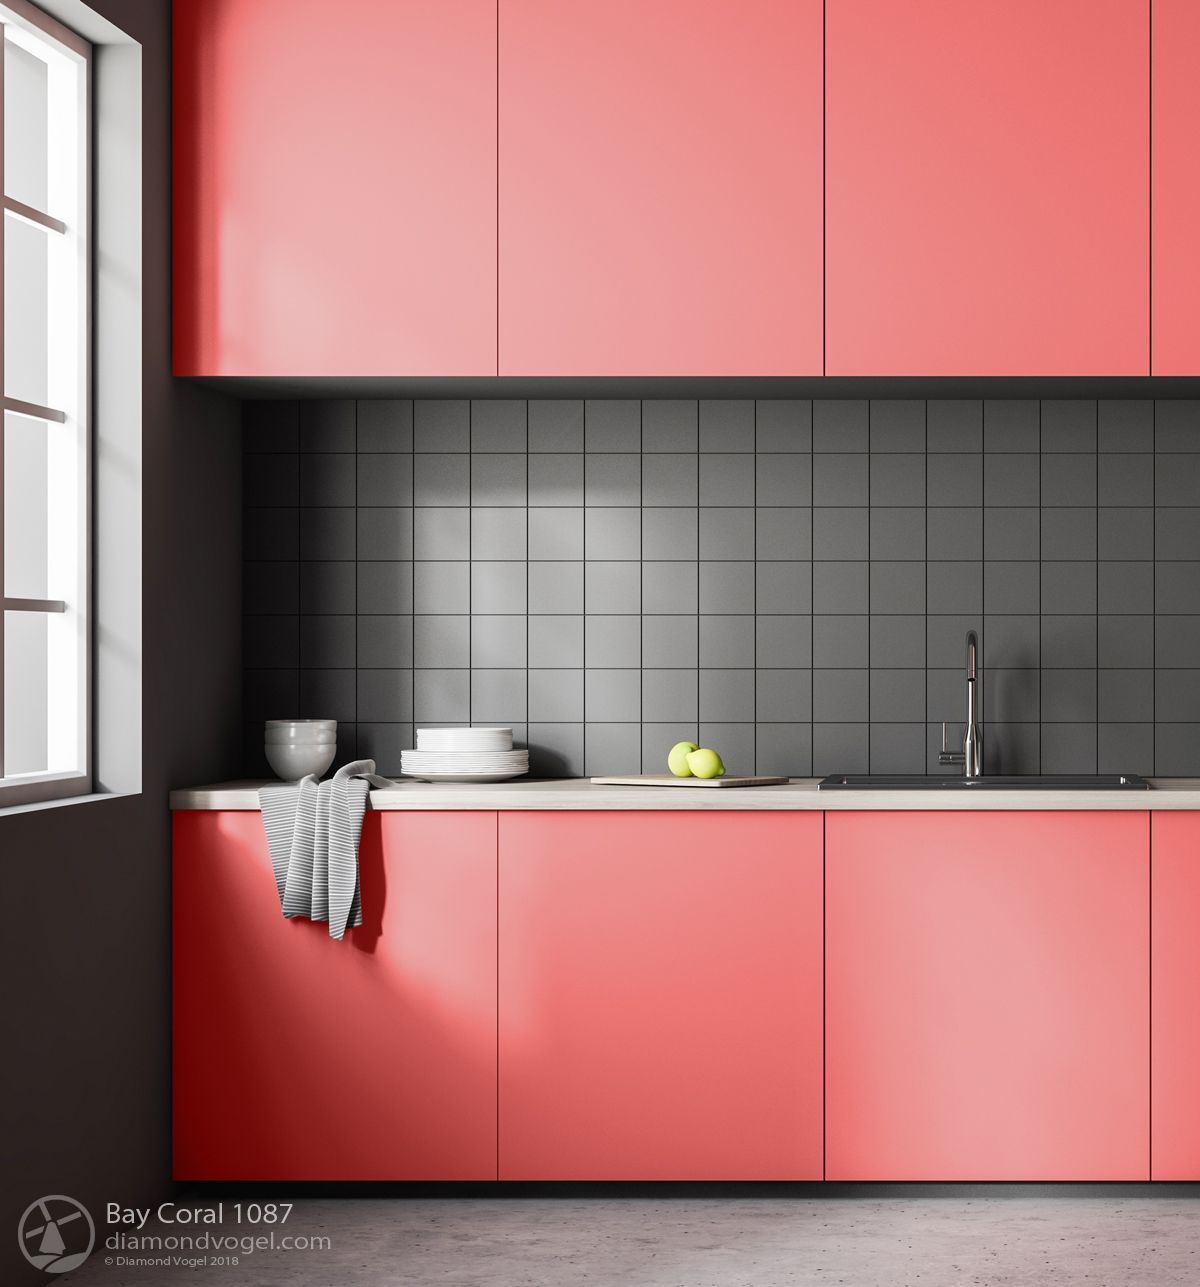 Painted Kitchen Cabinets Bay Coral 1087 Diamond Vogel Paint Coral Kitchen Kitchen Interior Kitchen Cabinets